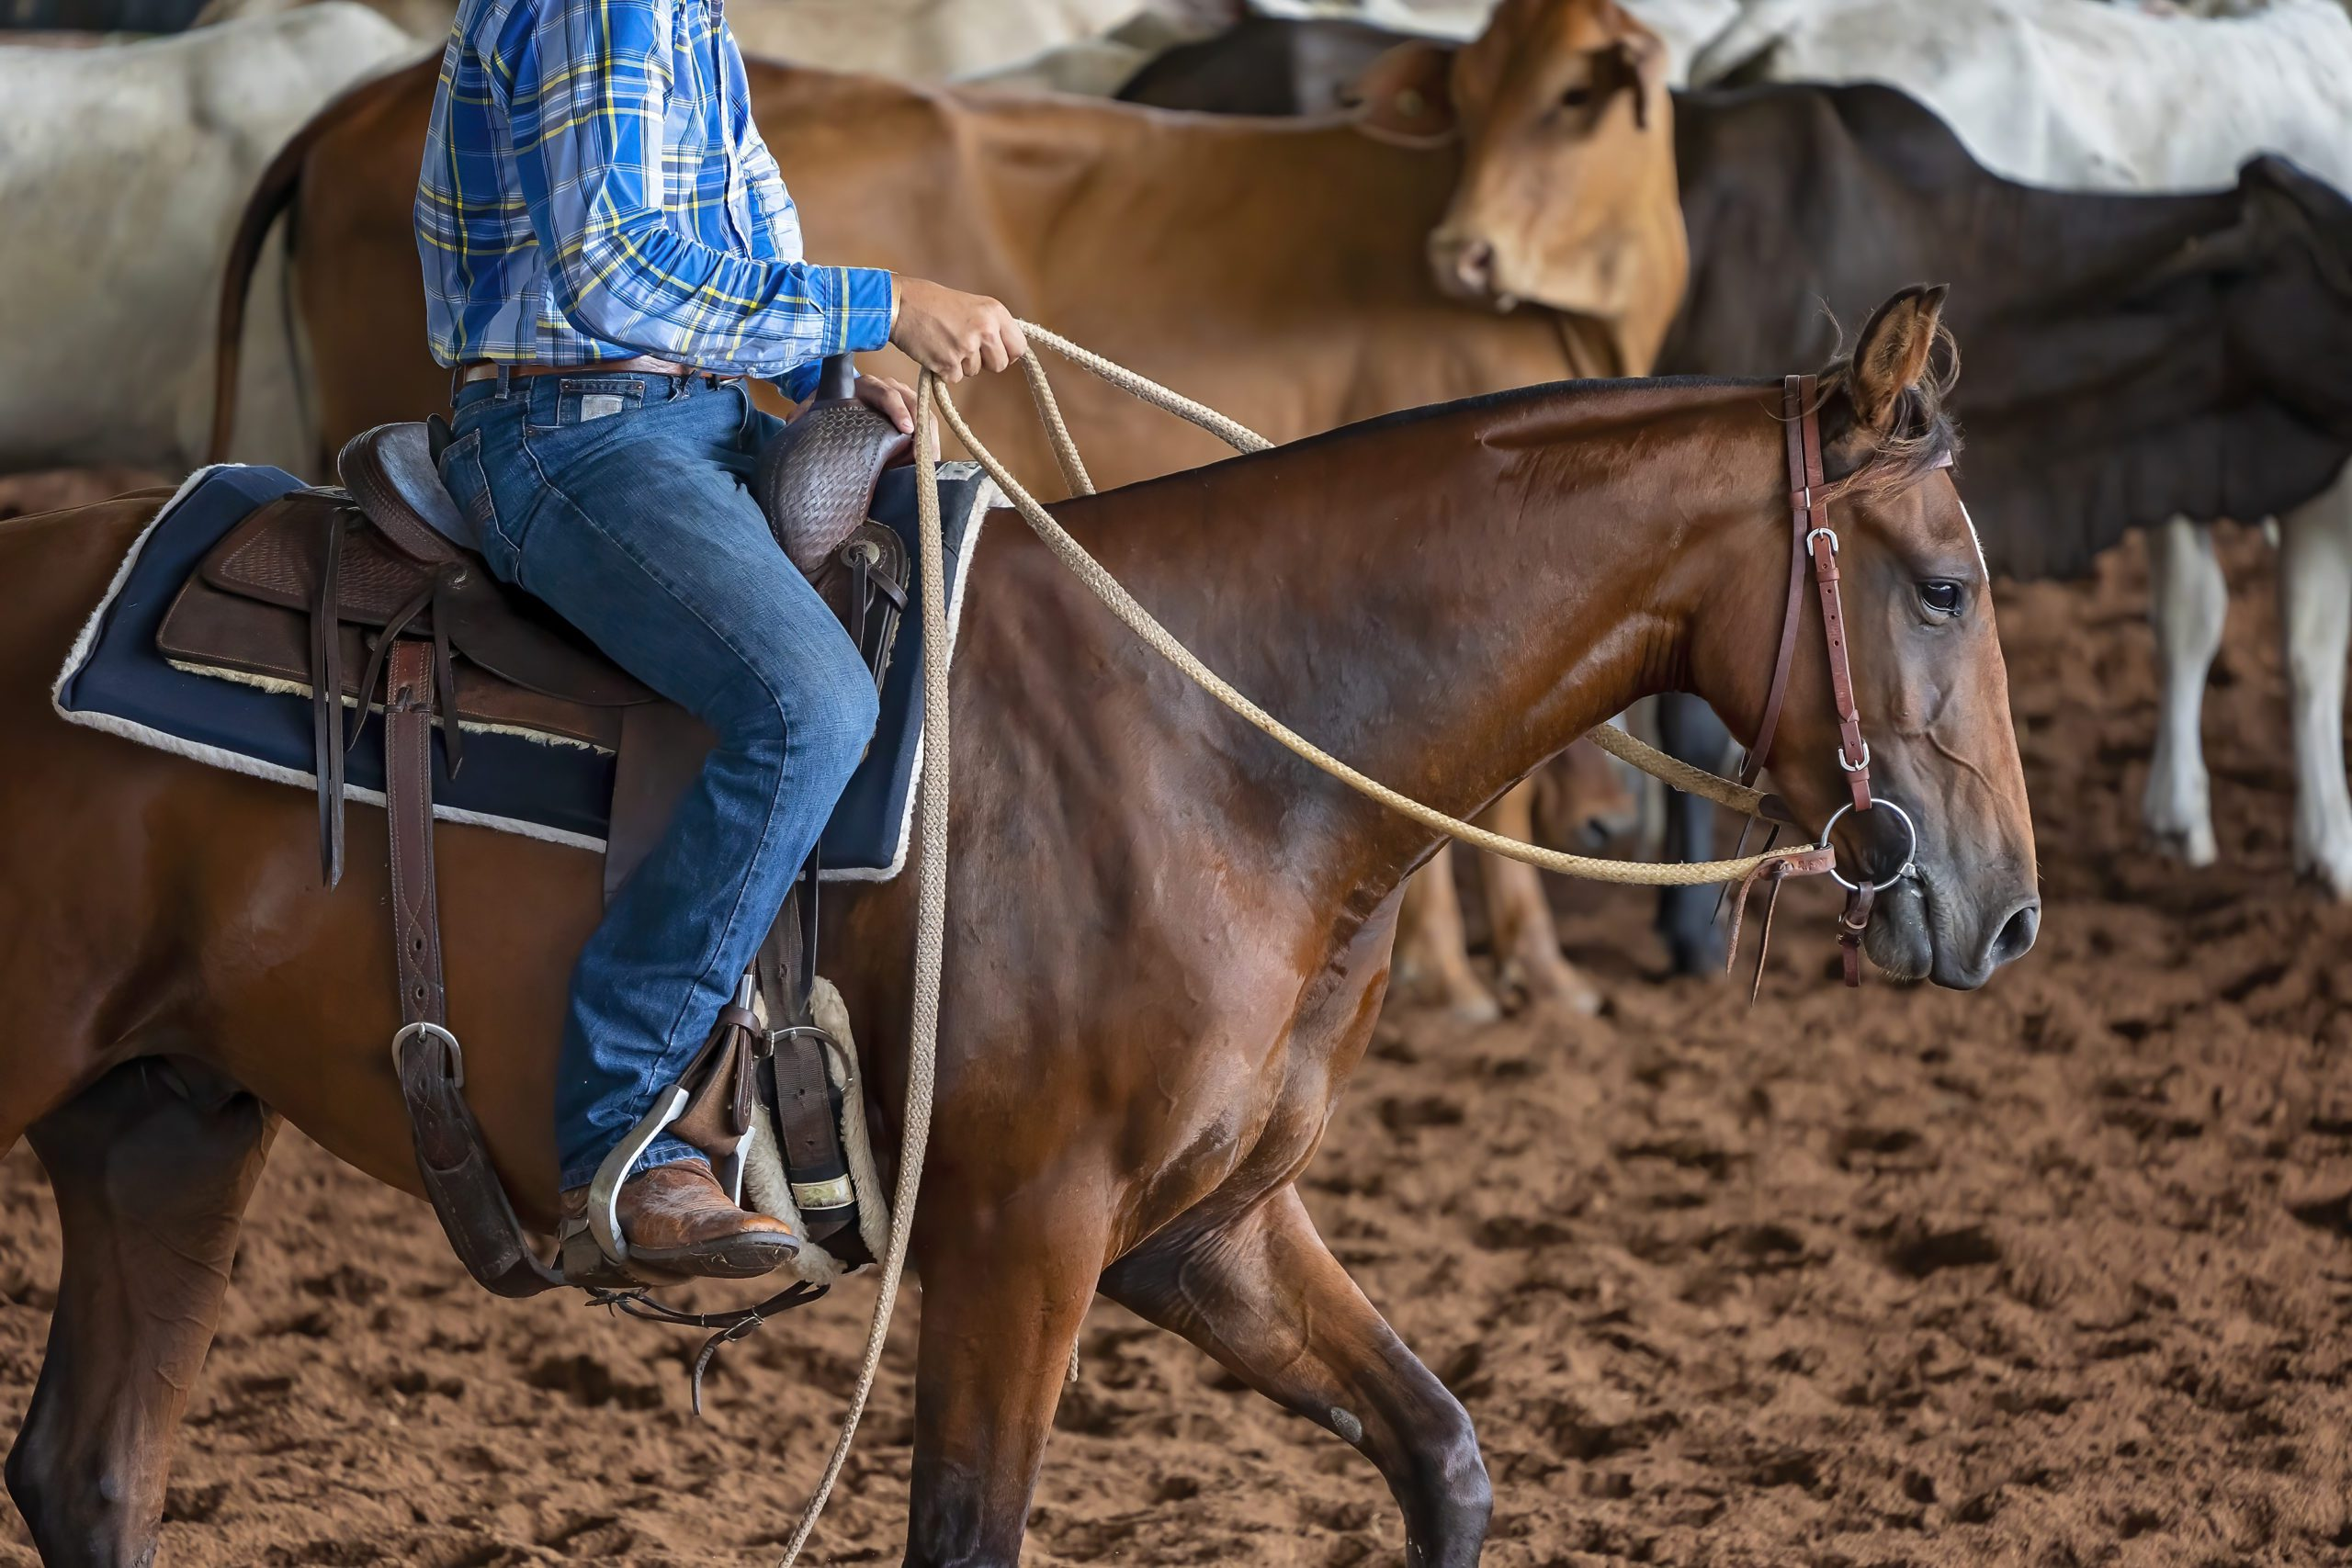 A horse and rider in a western style equestrian cutting competition